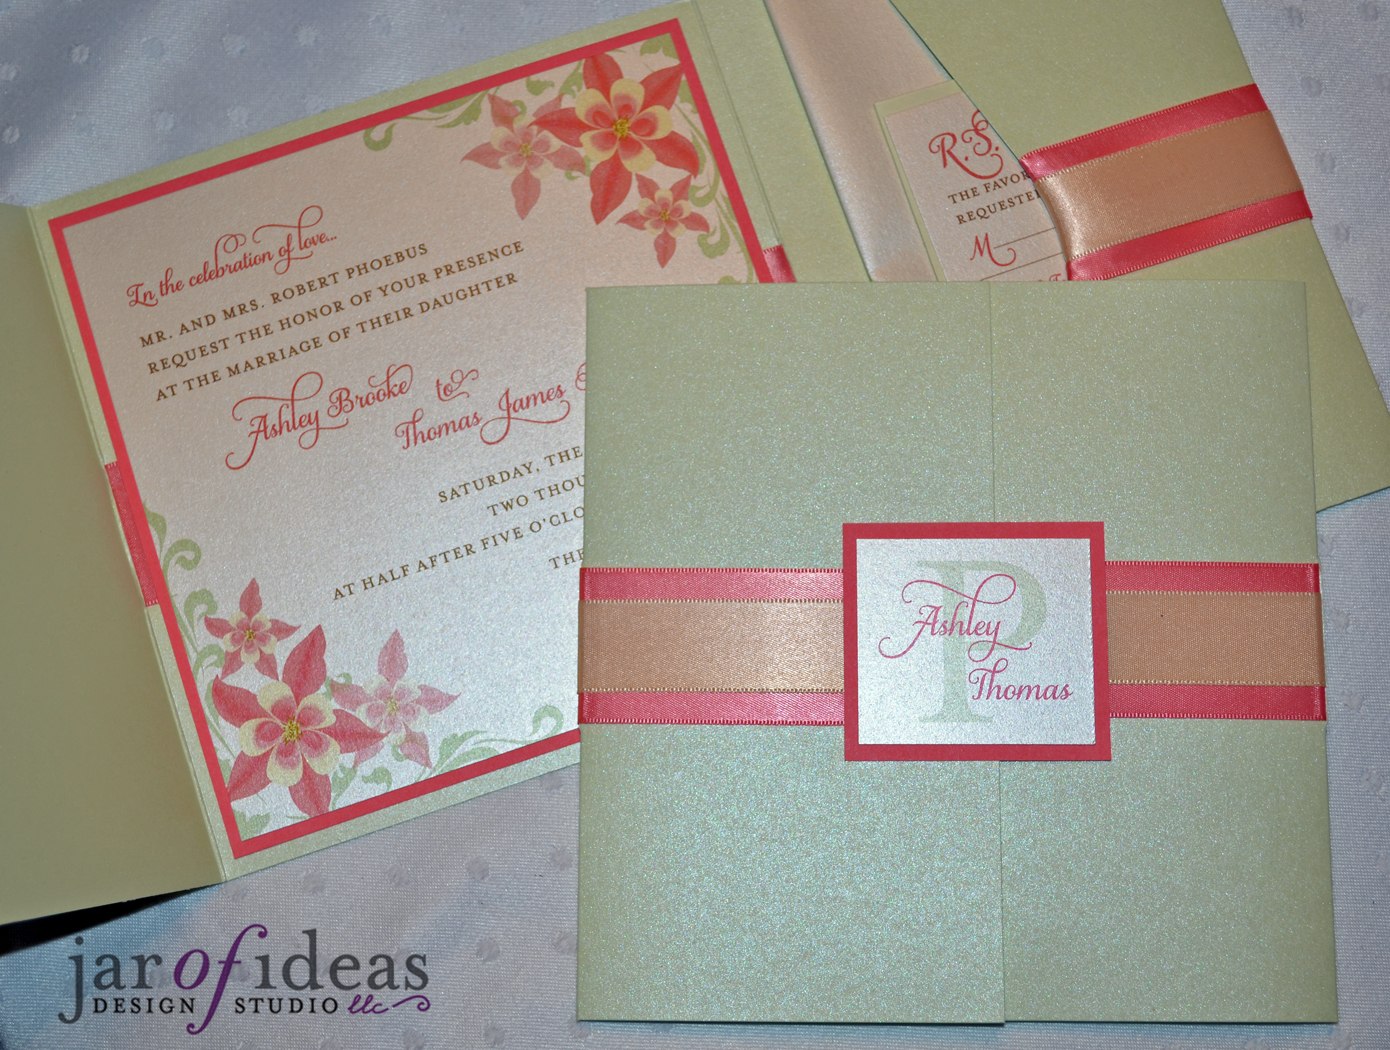 Wedding Invitations Coral Color: Jar Of Ideas: Ashley & Tom's Coral, Sage, And Yellow